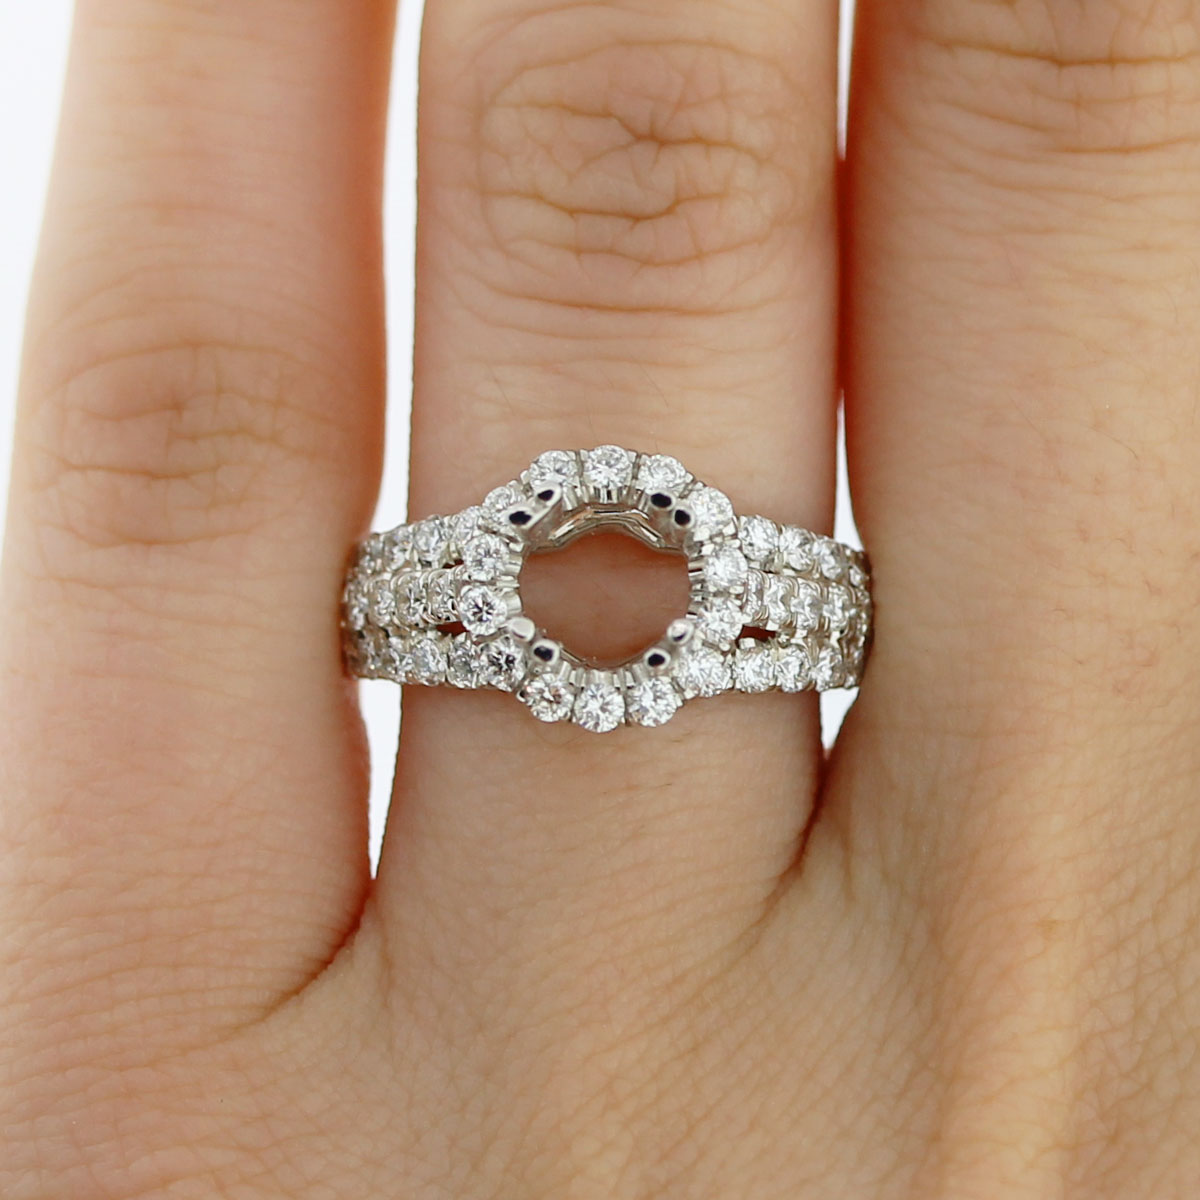 Uneek LVS803 114ctw Diamond Halo Tri Band Engagement Ring